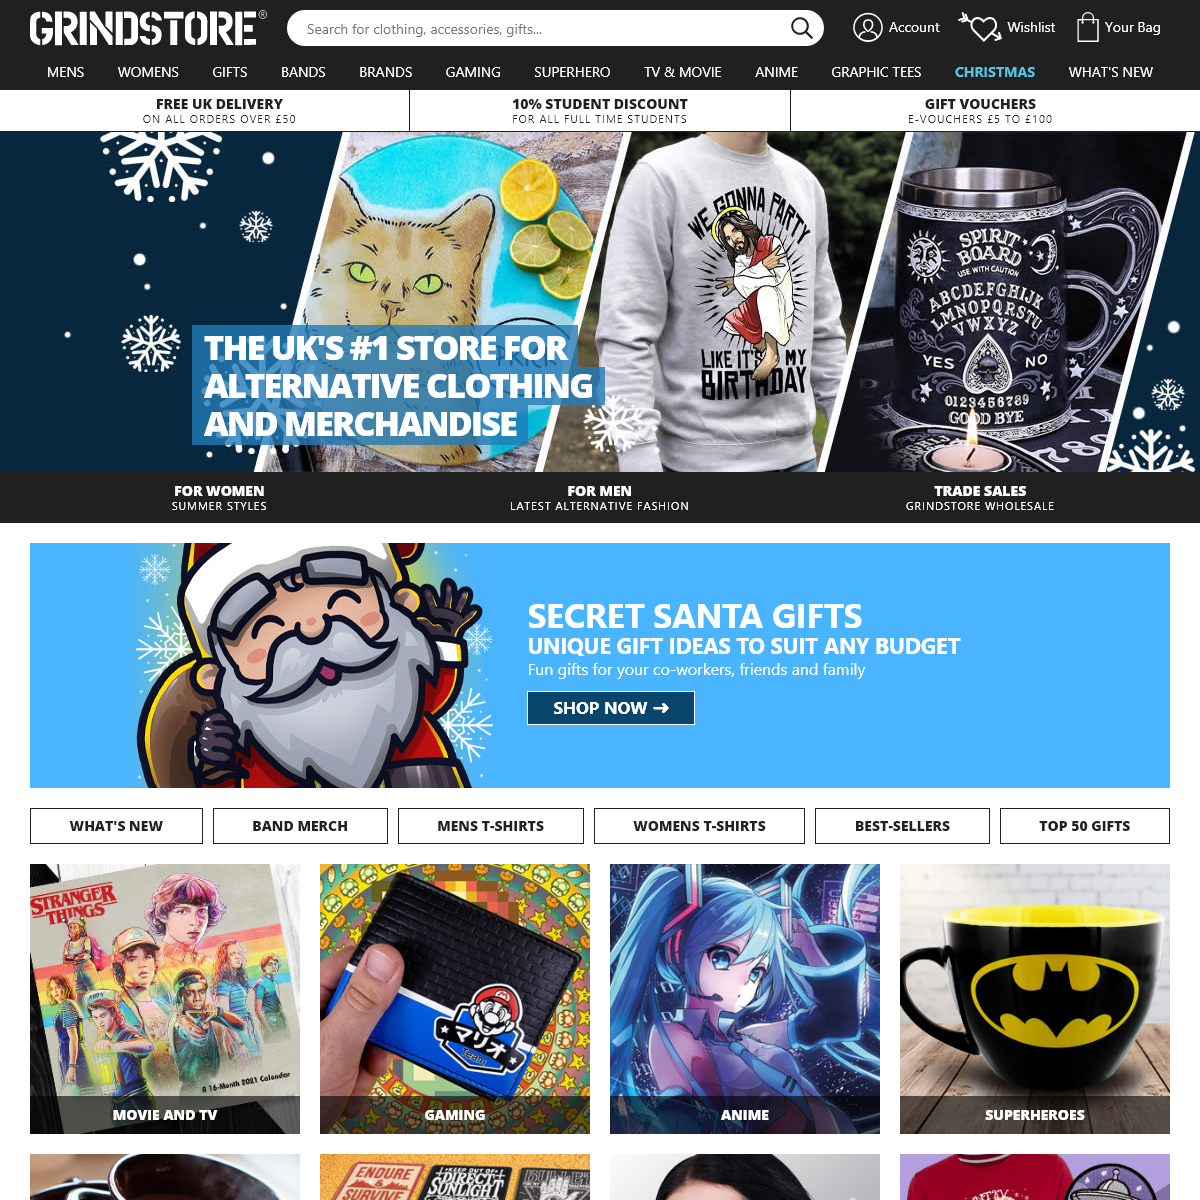 Grindstore- Alternative Clothing and Merchandise UK Store - Bands, Movies, Gaming, Anime and Superhero Clothing, Gifts and Acces